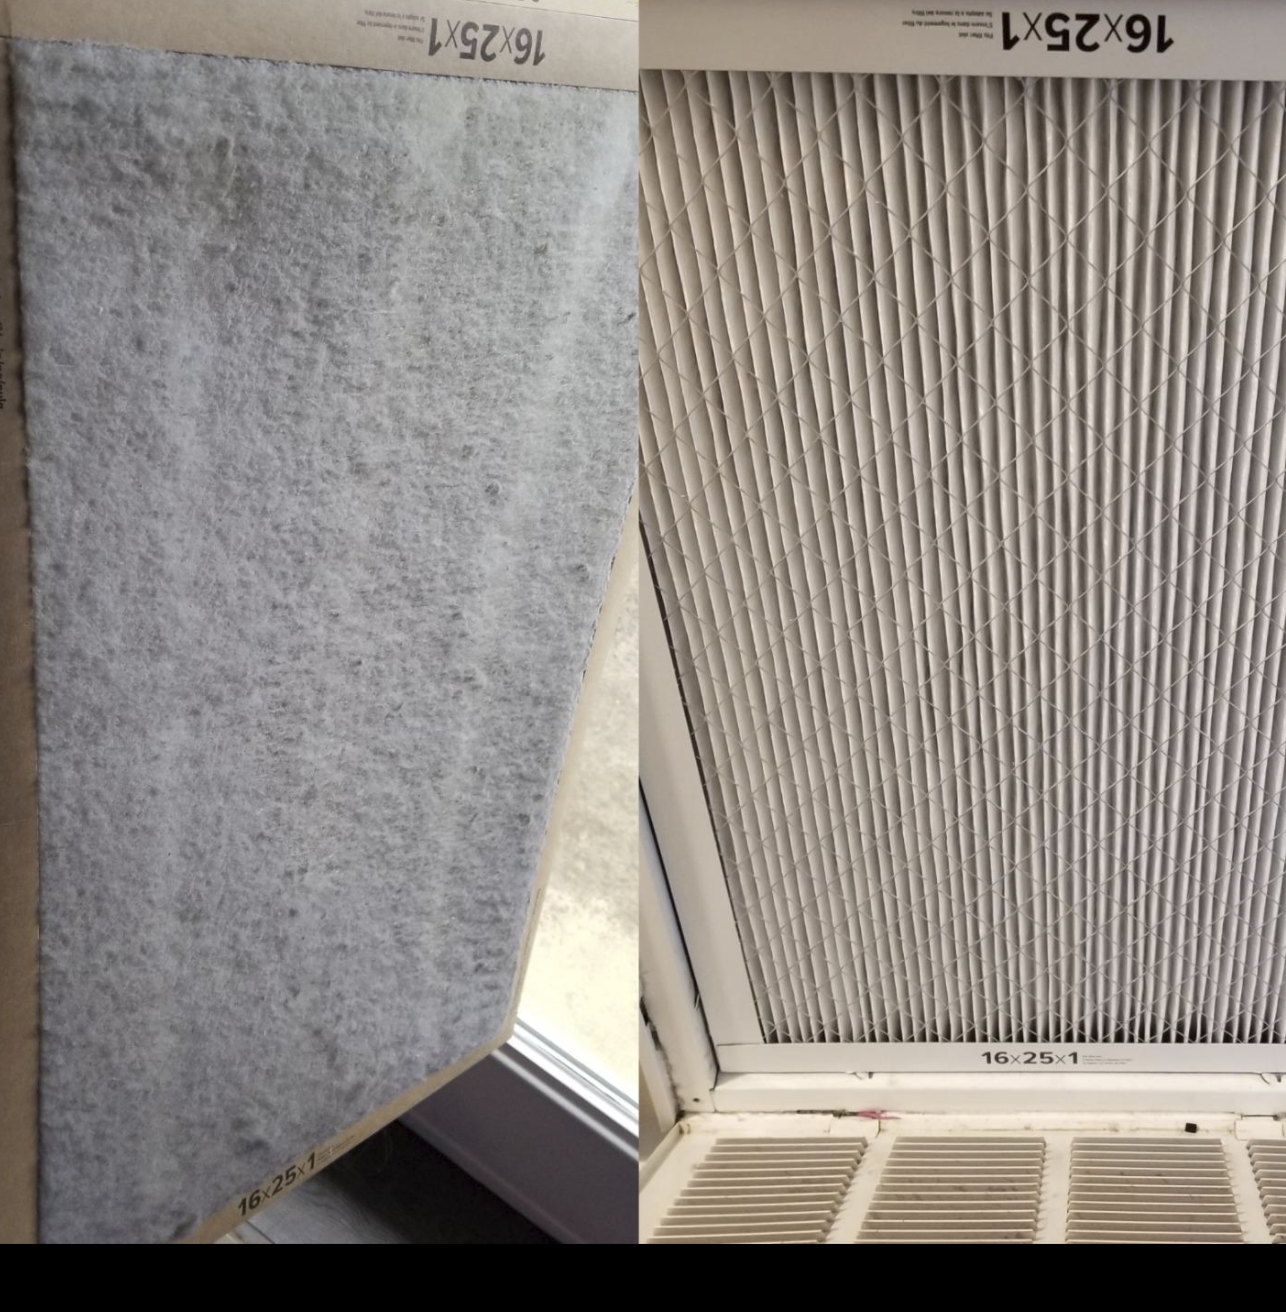 left side shows the filter full of dust (which of course means it's working) and the right side shows the filter when it was first put into the vent